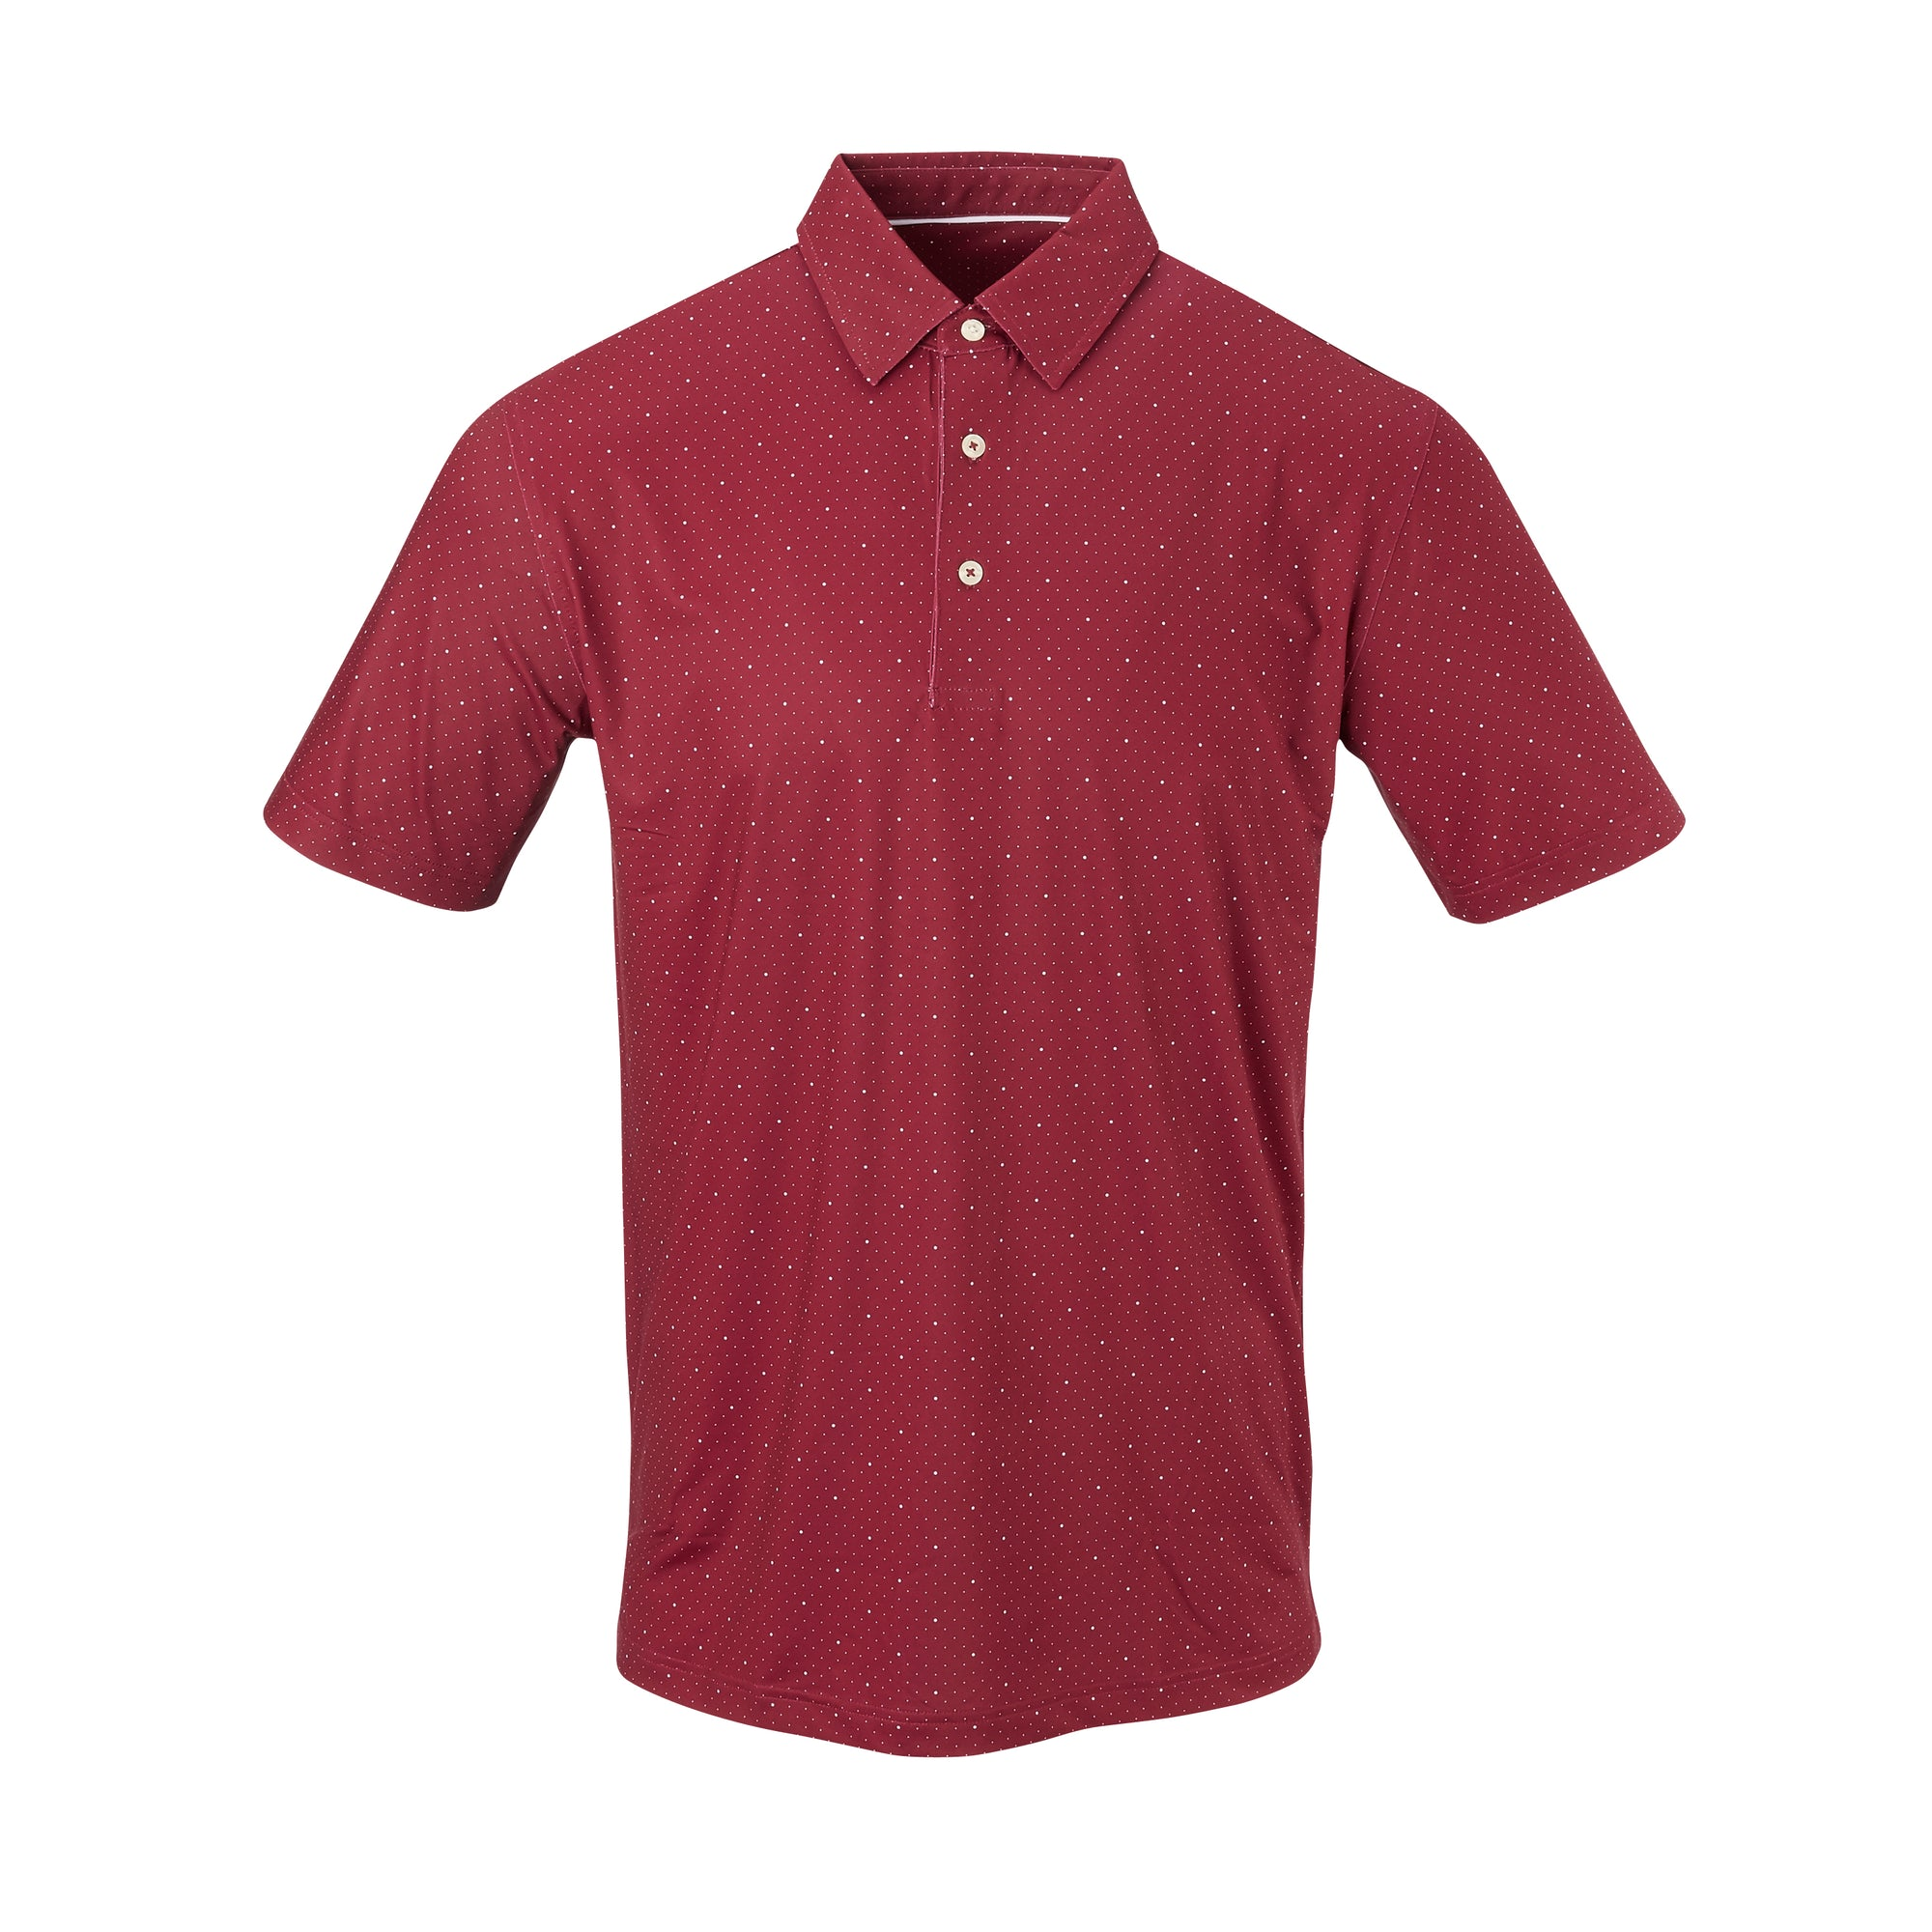 THE SYWALKER POLO - Merlot/White IS76803